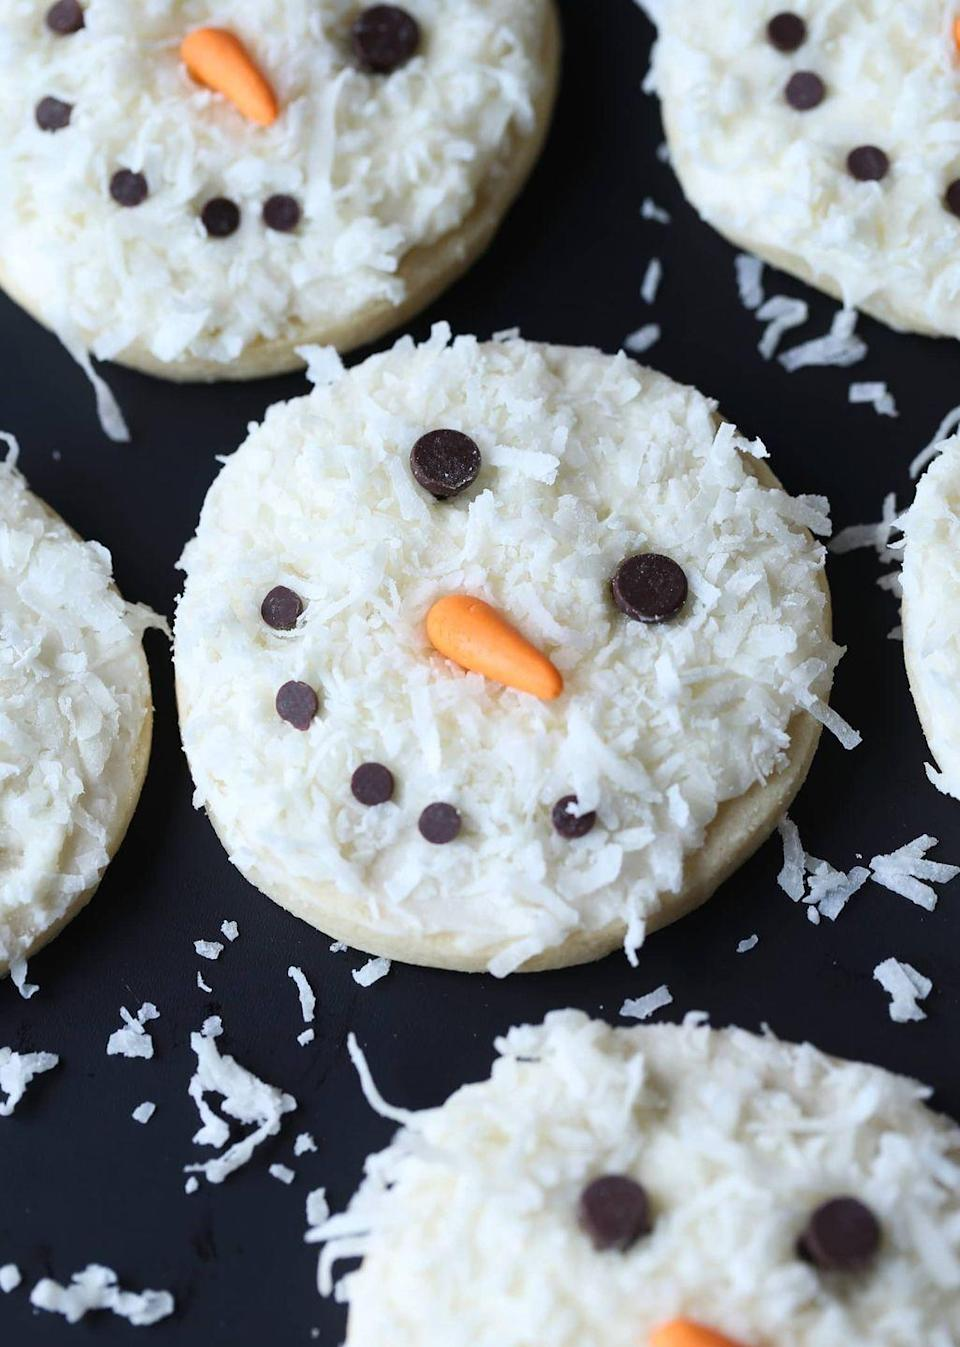 "<p>Frosty has never looked (or tasted!) this good. Enlist your little ones to help decorate the smiling faces.</p><p><strong>Get the recipe at <a href=""https://cookiesandcups.com/coconut-snowman-cookies/"" rel=""nofollow noopener"" target=""_blank"" data-ylk=""slk:Cookies and Cups"" class=""link rapid-noclick-resp"">Cookies and Cups</a>.</strong></p><p><strong><strong><a class=""link rapid-noclick-resp"" href=""https://www.amazon.com/Nordic-Ware-Natural-Aluminum-Commercial/dp/B0049C2S32?tag=syn-yahoo-20&ascsubtag=%5Bartid%7C10050.g.647%5Bsrc%7Cyahoo-us"" rel=""nofollow noopener"" target=""_blank"" data-ylk=""slk:SHOP BAKING SHEETS"">SHOP BAKING SHEETS</a></strong><br></strong></p>"